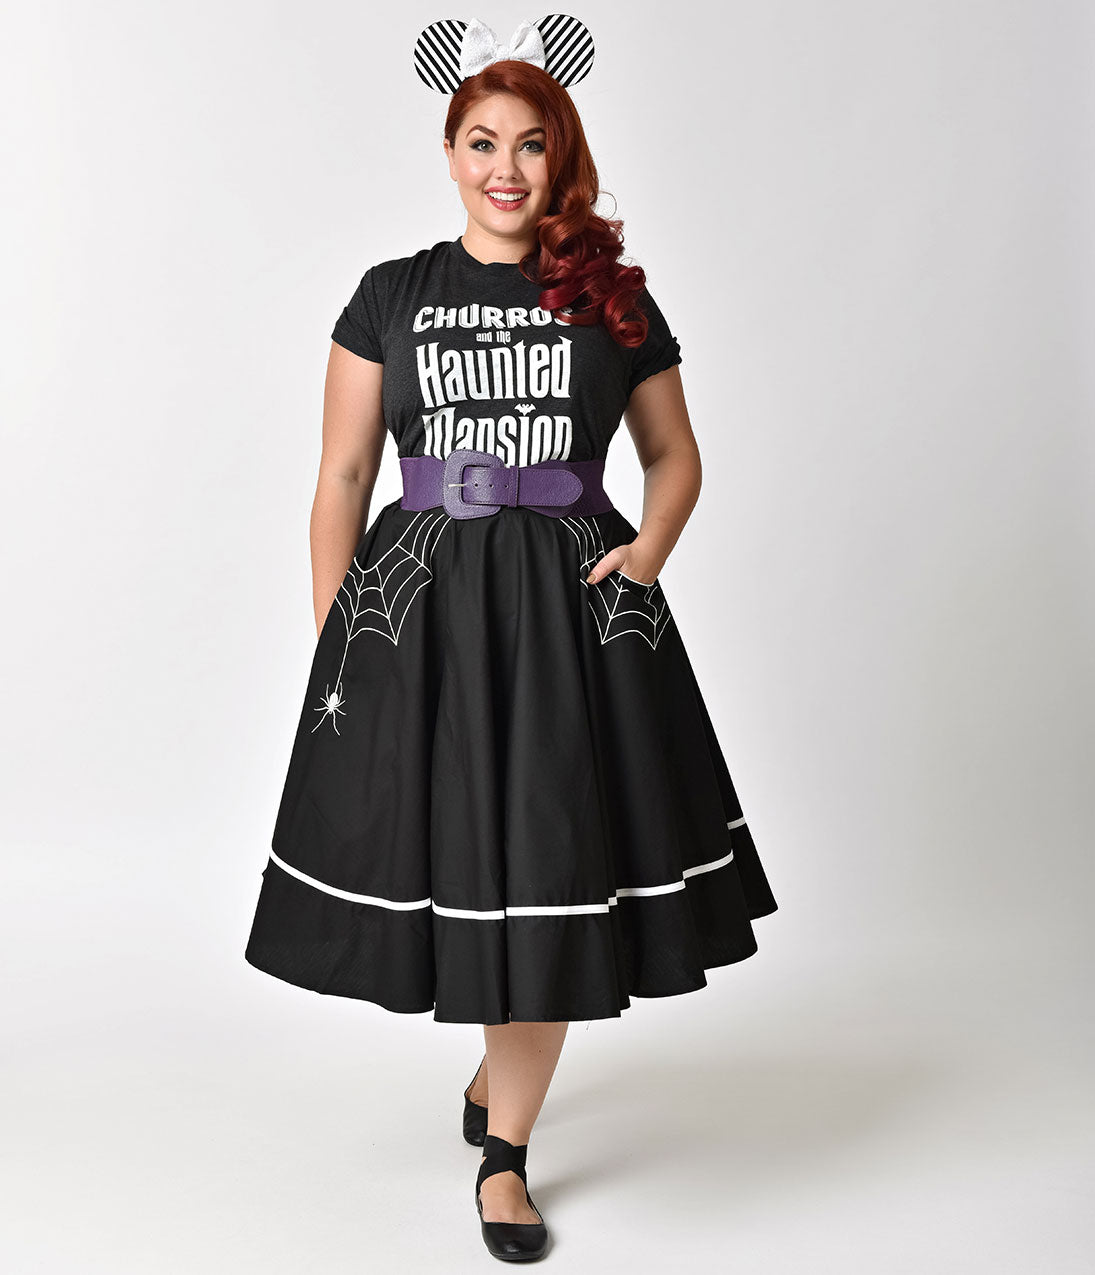 Vintage Retro Halloween Themed Clothing Hell Bunny Plus Size 1950S Style Black Miss Muffet Embroidered Swing Skirt $62.00 AT vintagedancer.com